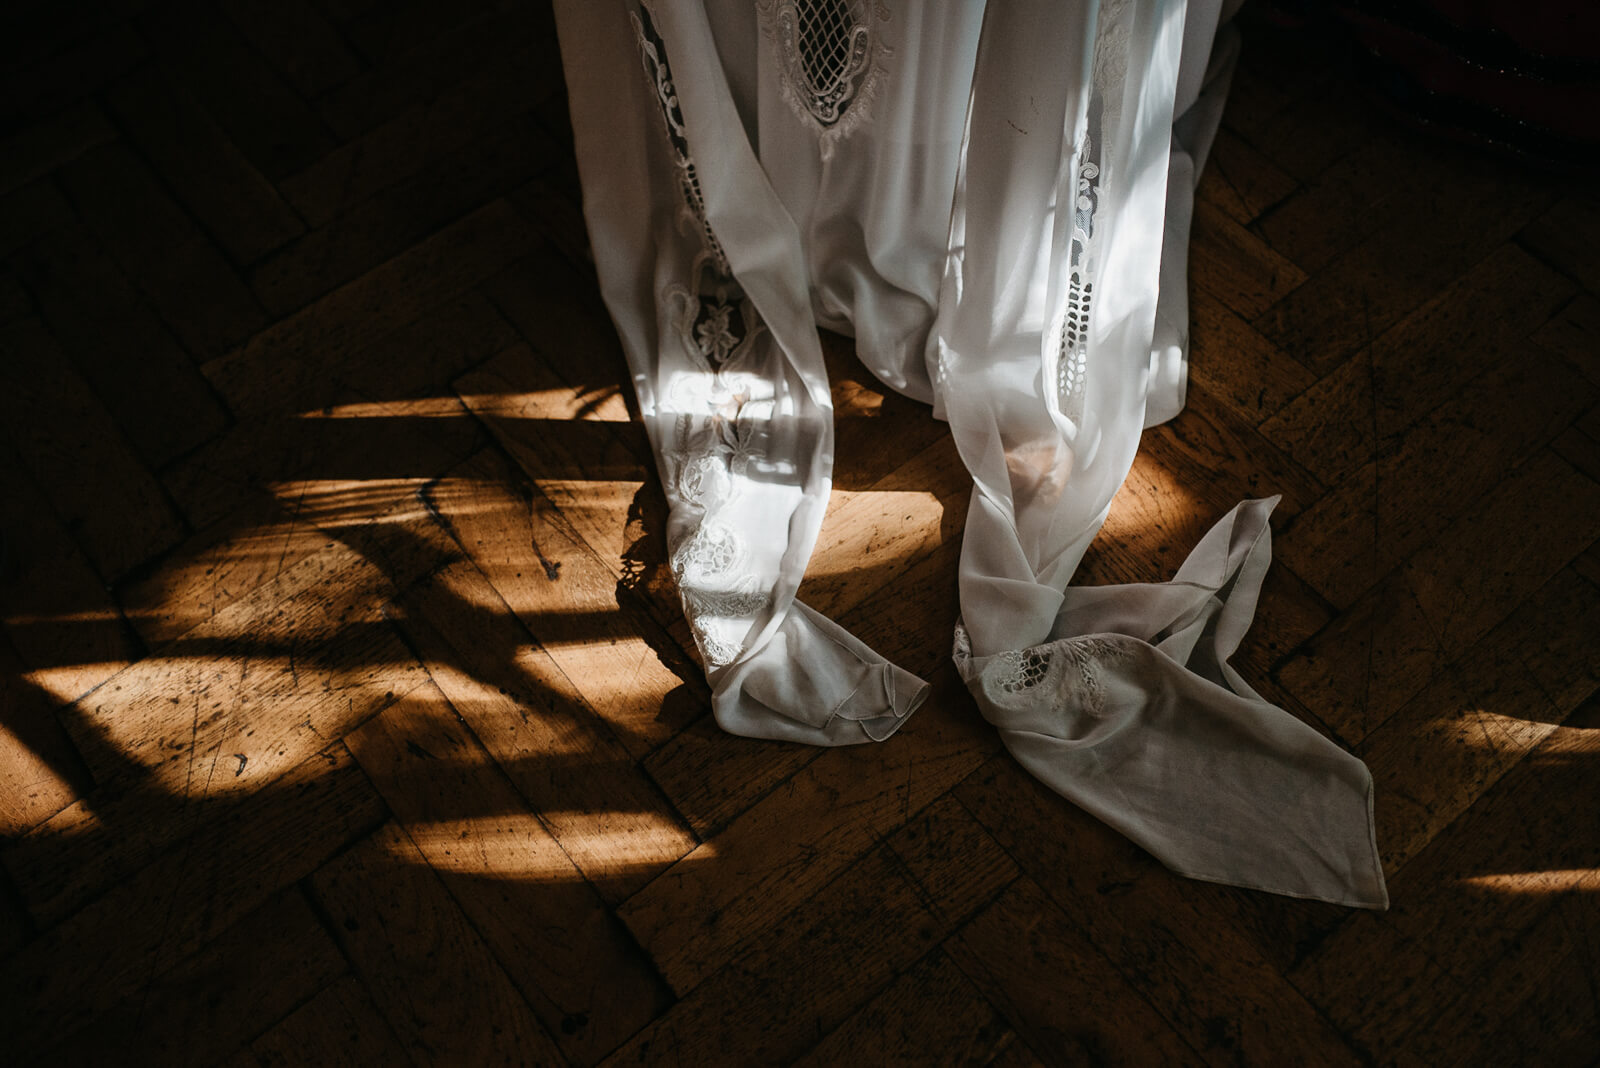 Brides chic stylish dress on parquet flooring at Marylebone One, London